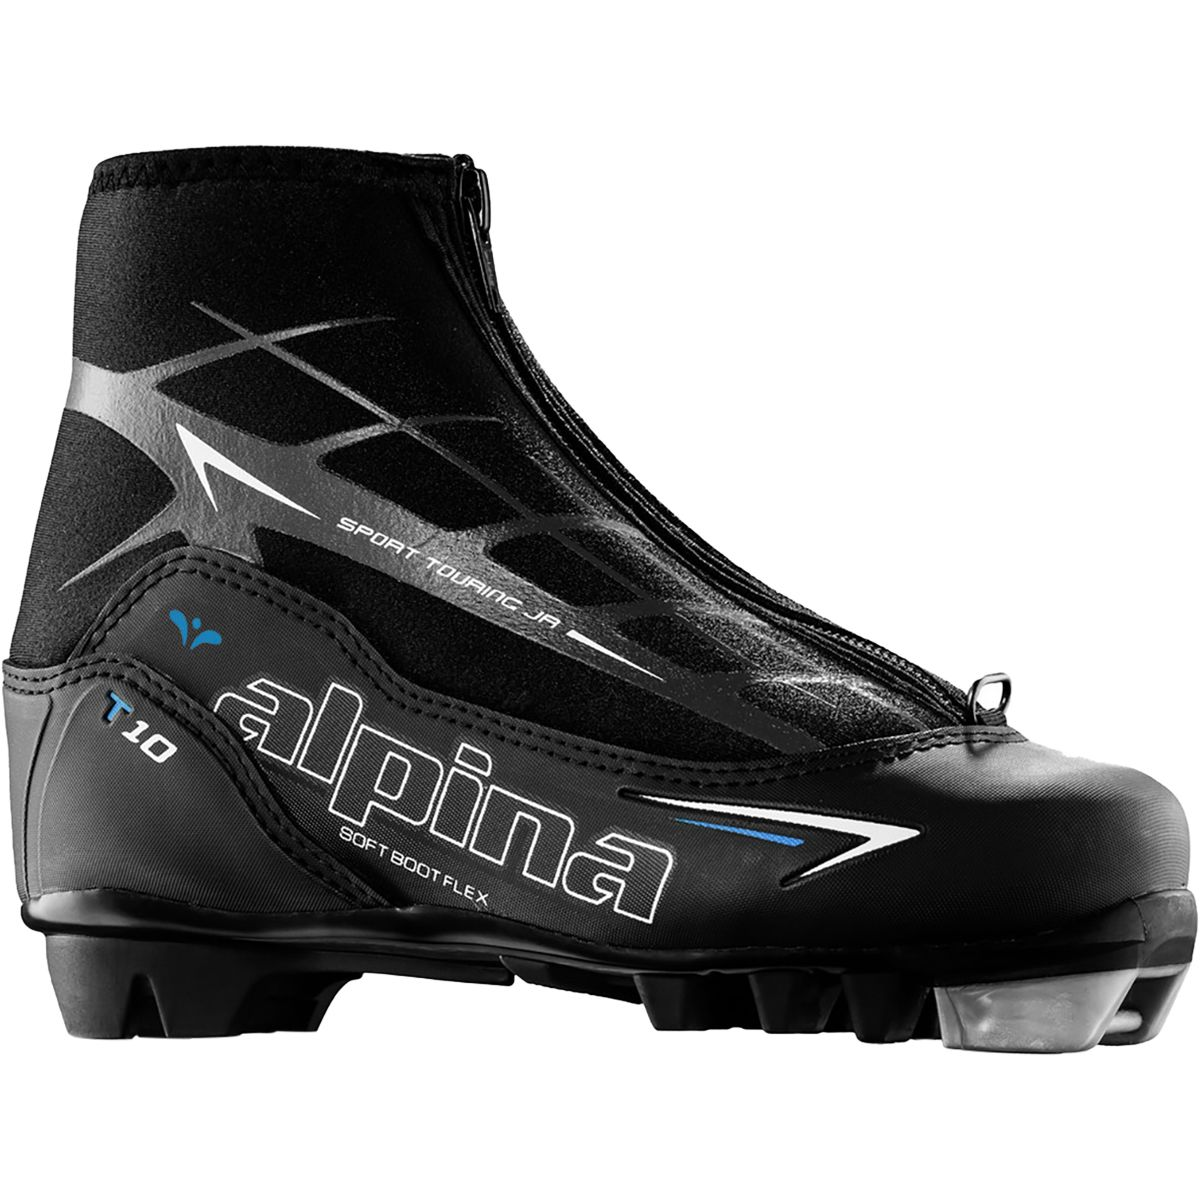 photo: Alpina T10 Eve nordic touring boot